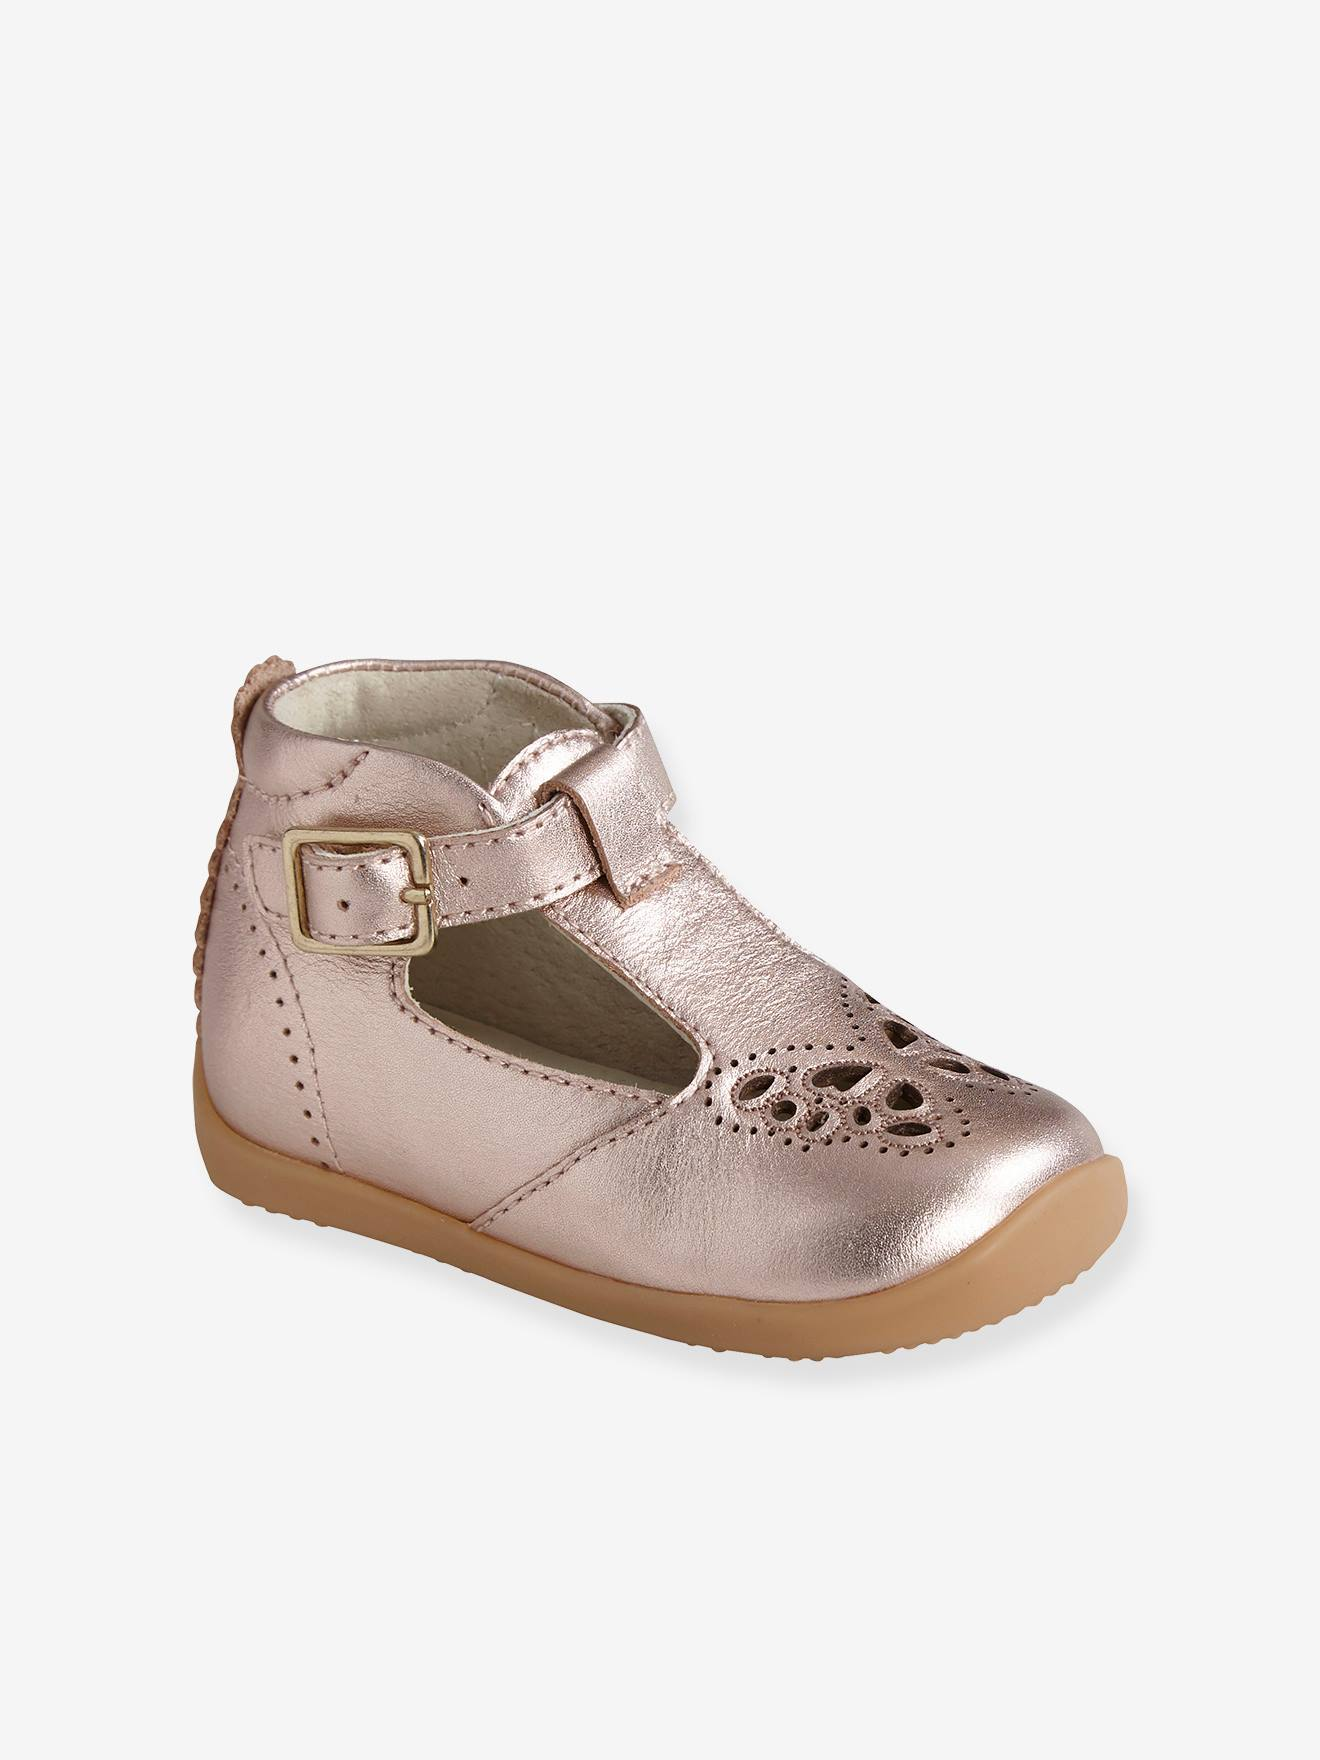 Leather Shoes for Baby Girls, Designed